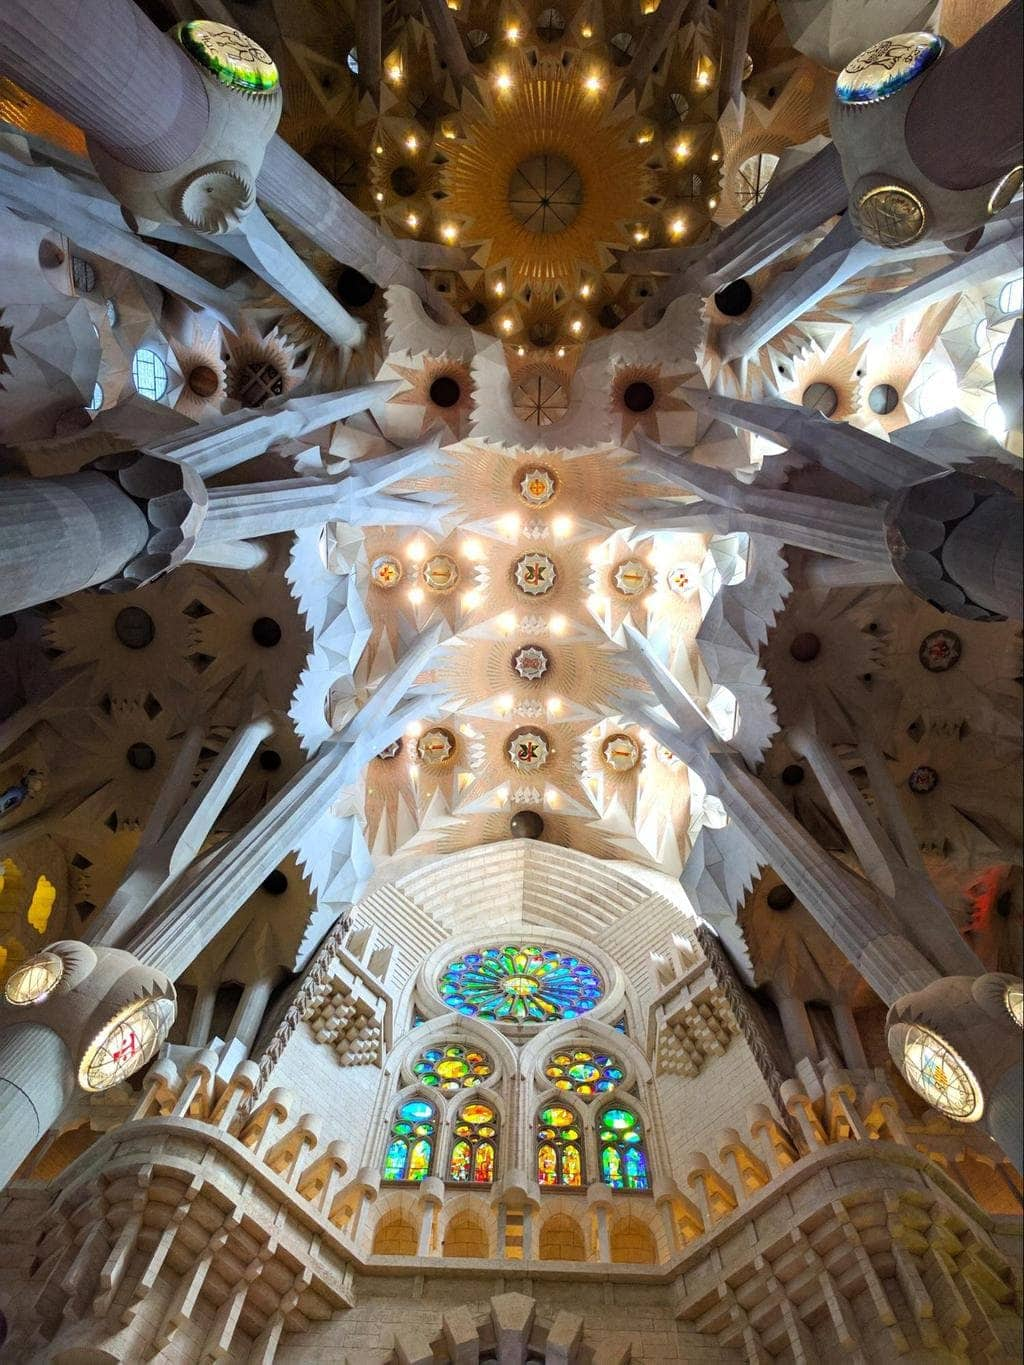 The ceiling of Sagrada Familia with the famous tree-shaped columns